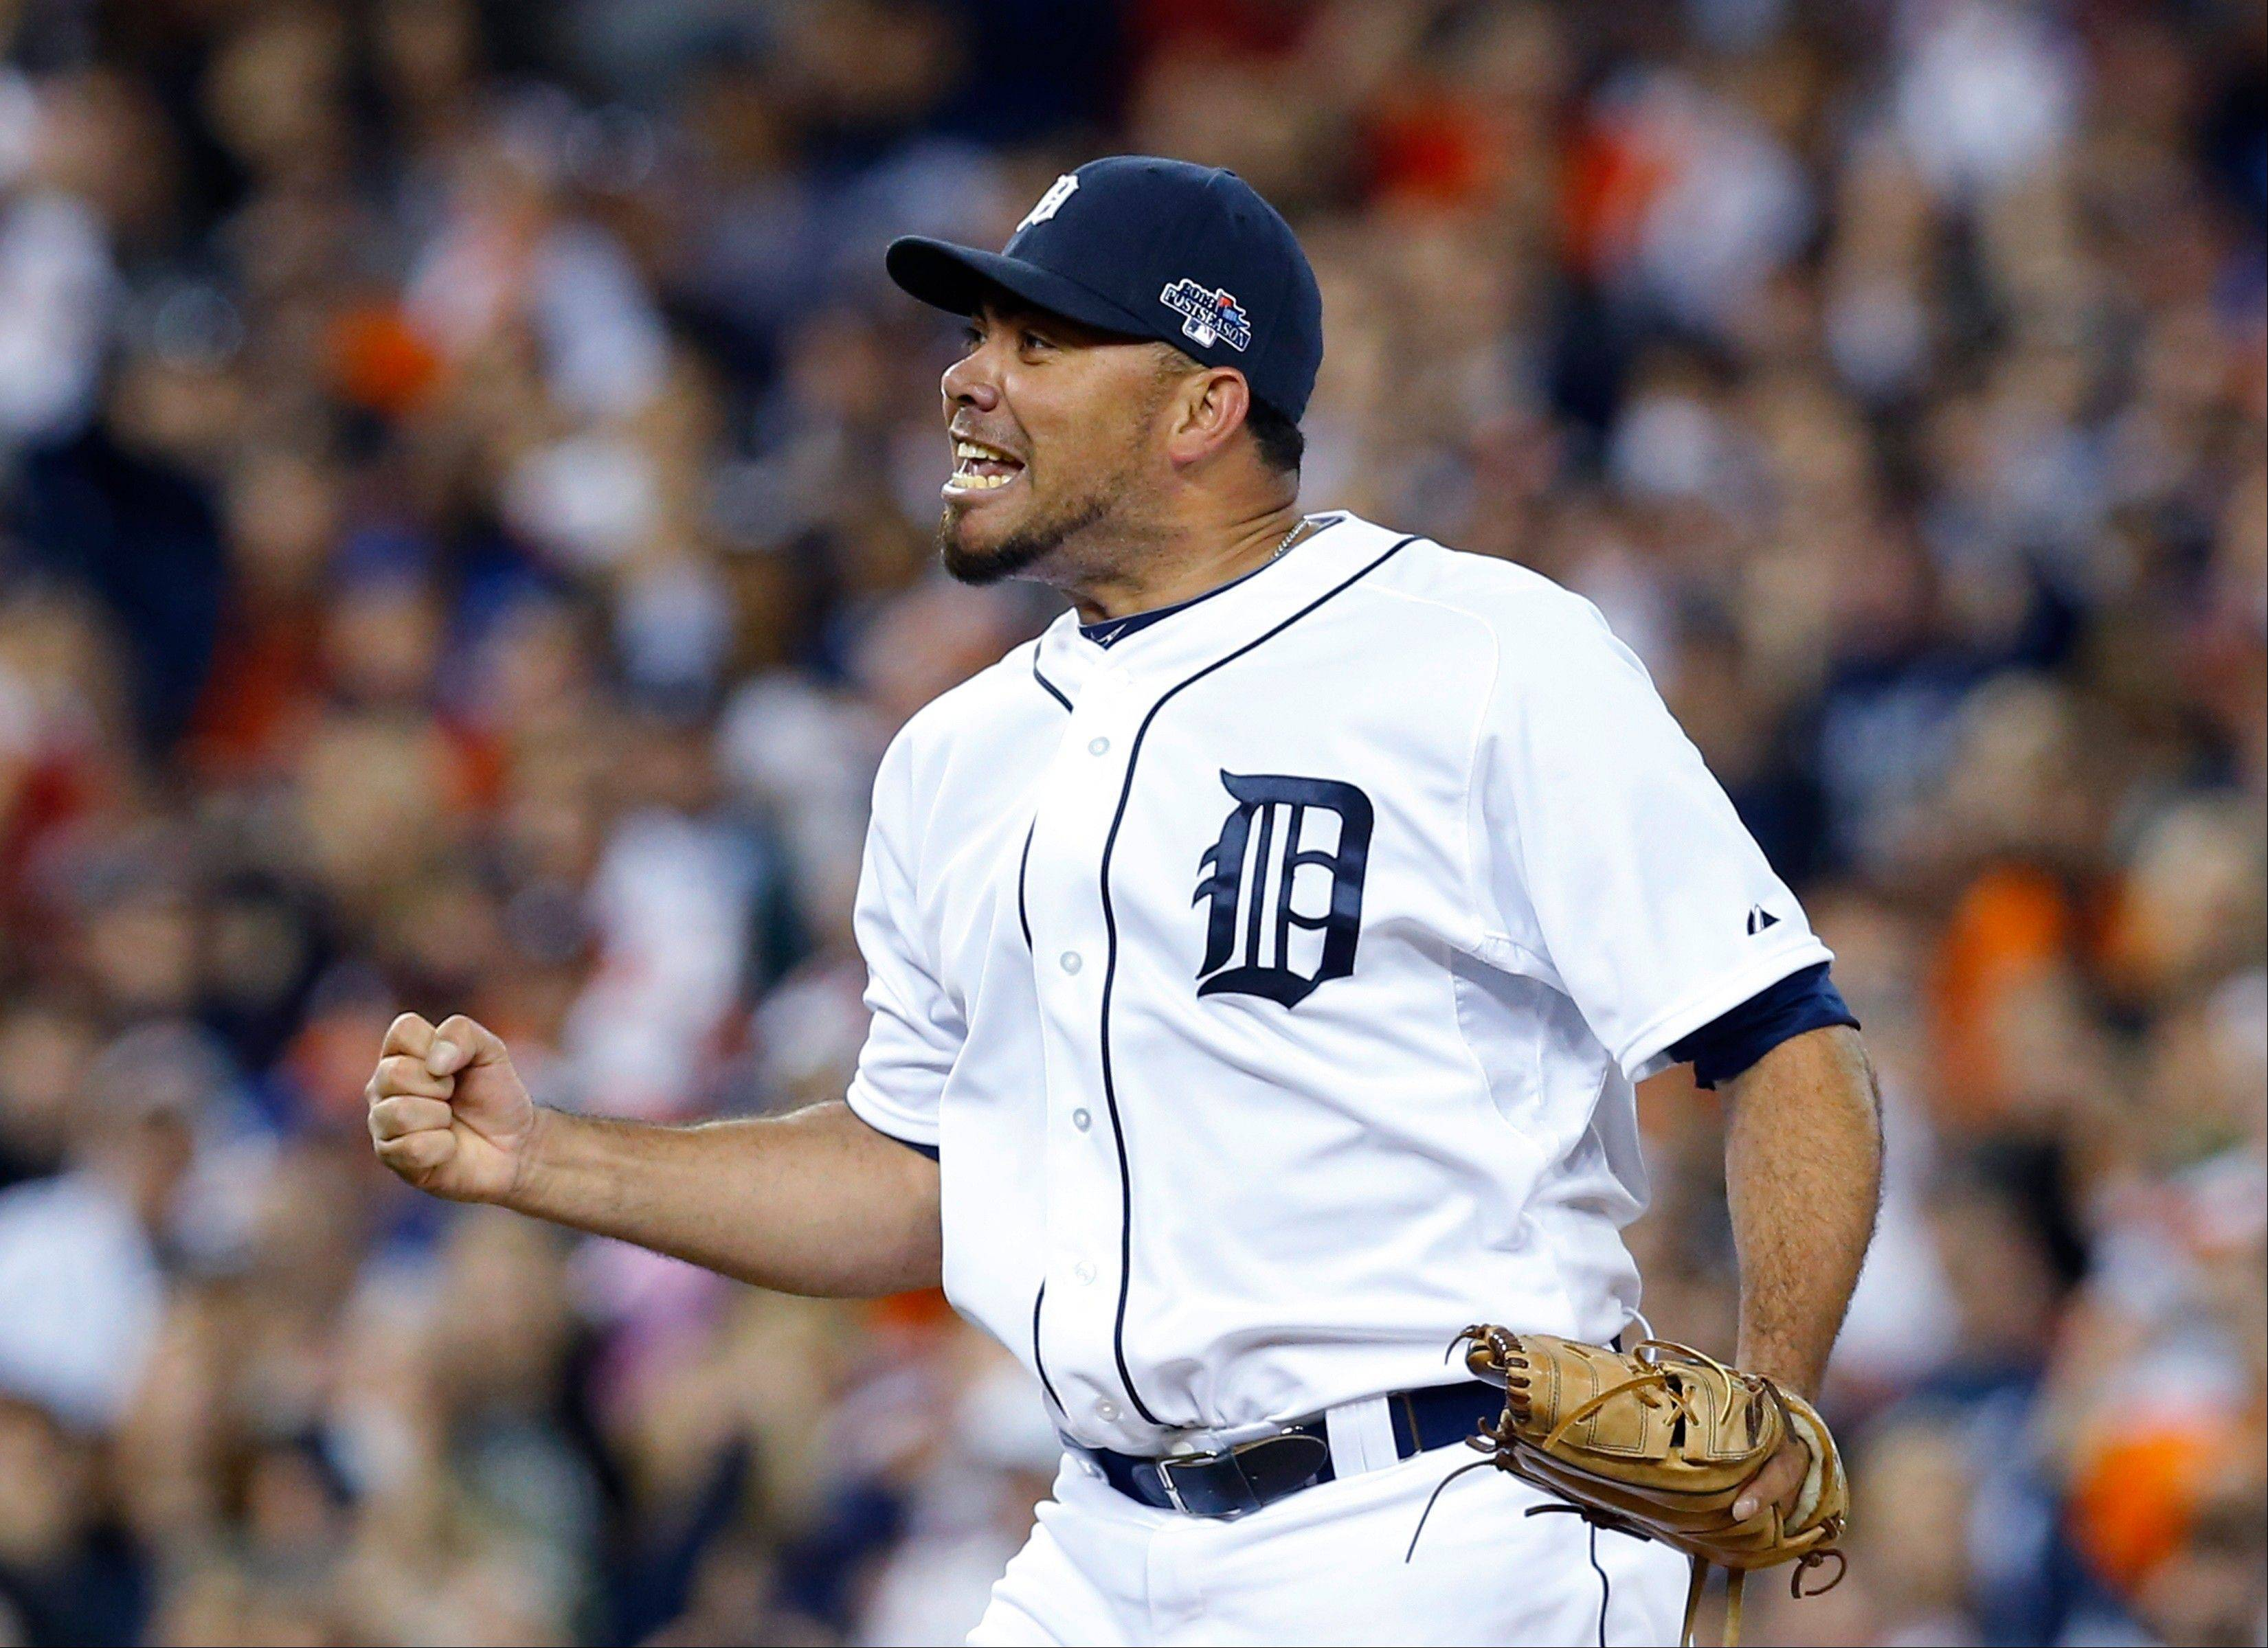 Tigers relief pitcher Joaquin Benoit reacts to the final out in Game 4 on Tuesday night in Detroit.